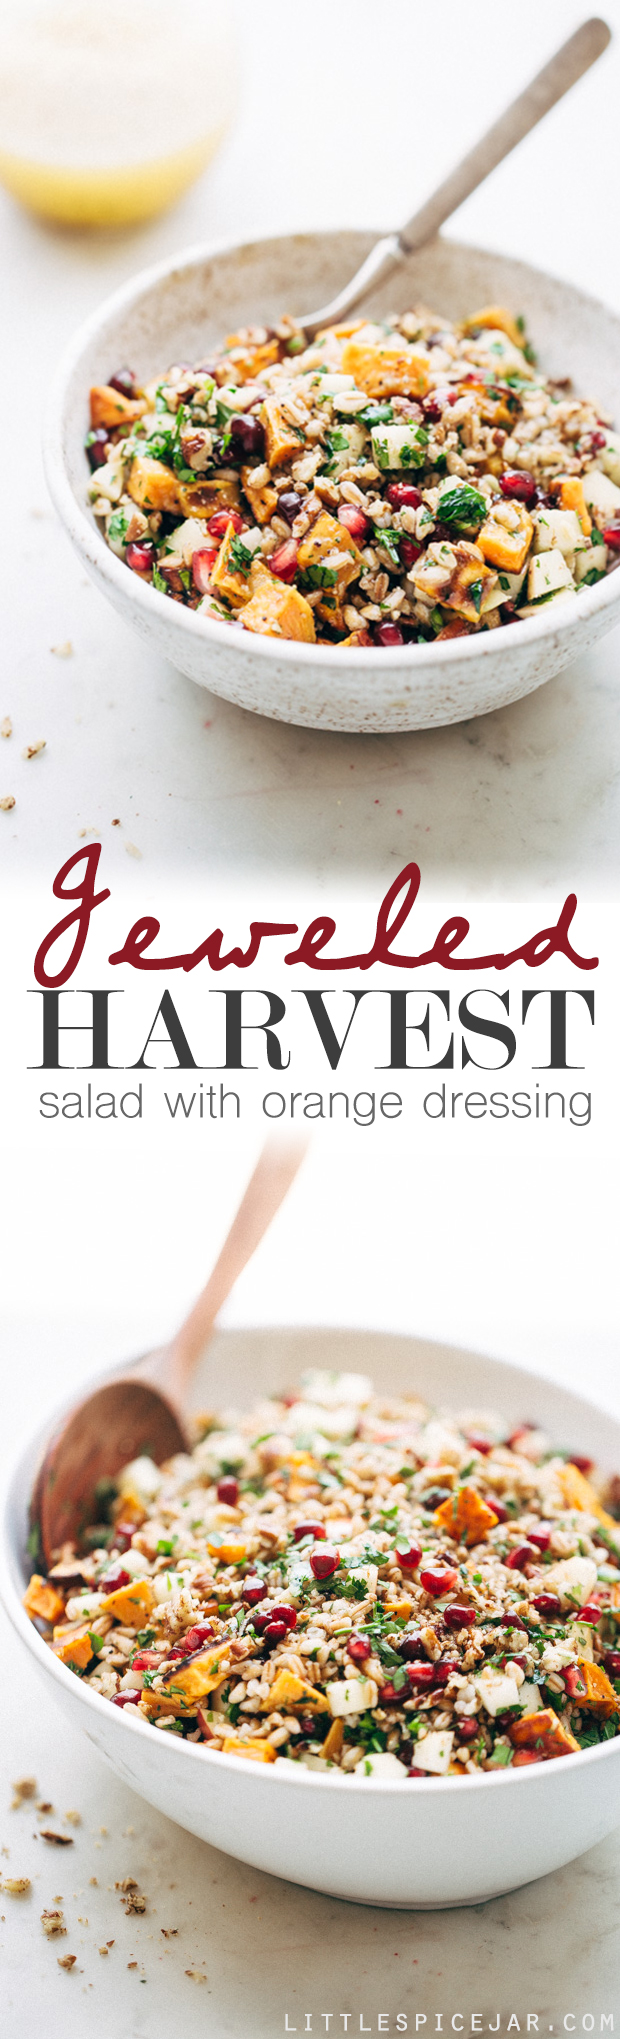 Jeweled Harvest Salad with Orange Dressing - A simple salad with tons of topping possibilities, drizzled with a simple orange dressing that makes the whole thing pop! #harvestsalad #salad #autumnsalad | Littlespicejar.com